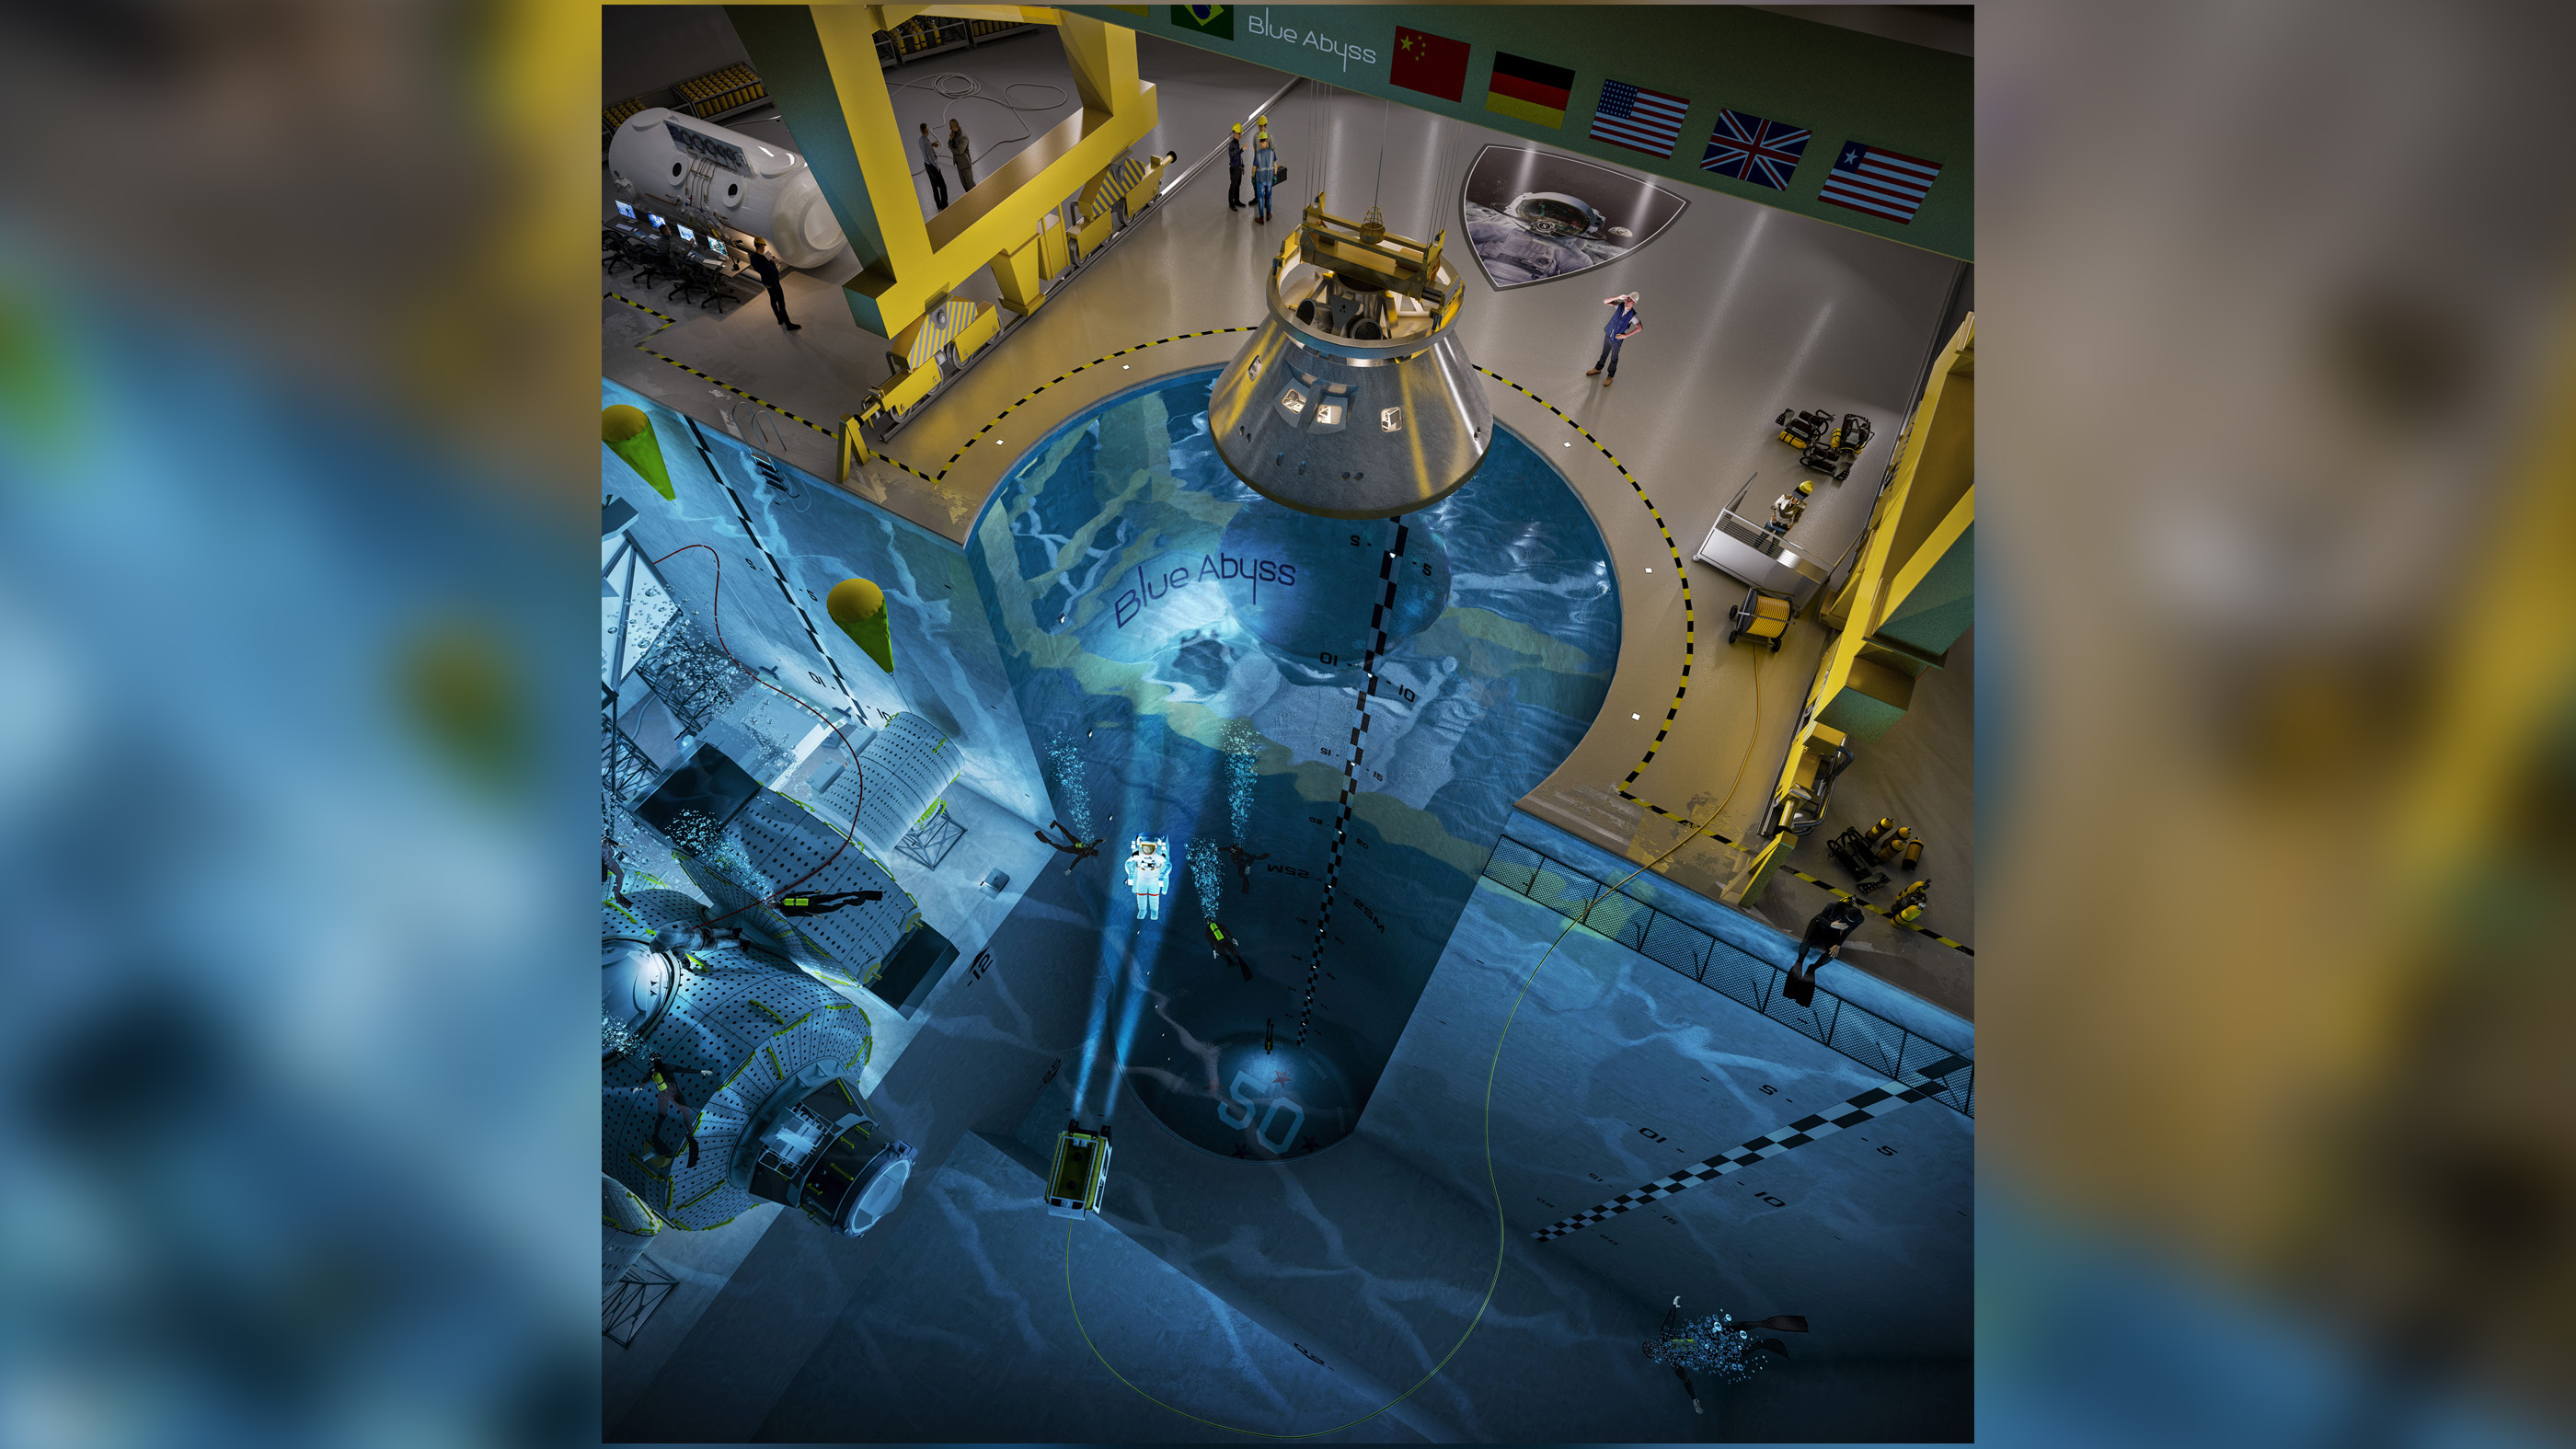 World's largest (and deepest) indoor pool to house new astronaut training center thumbnail